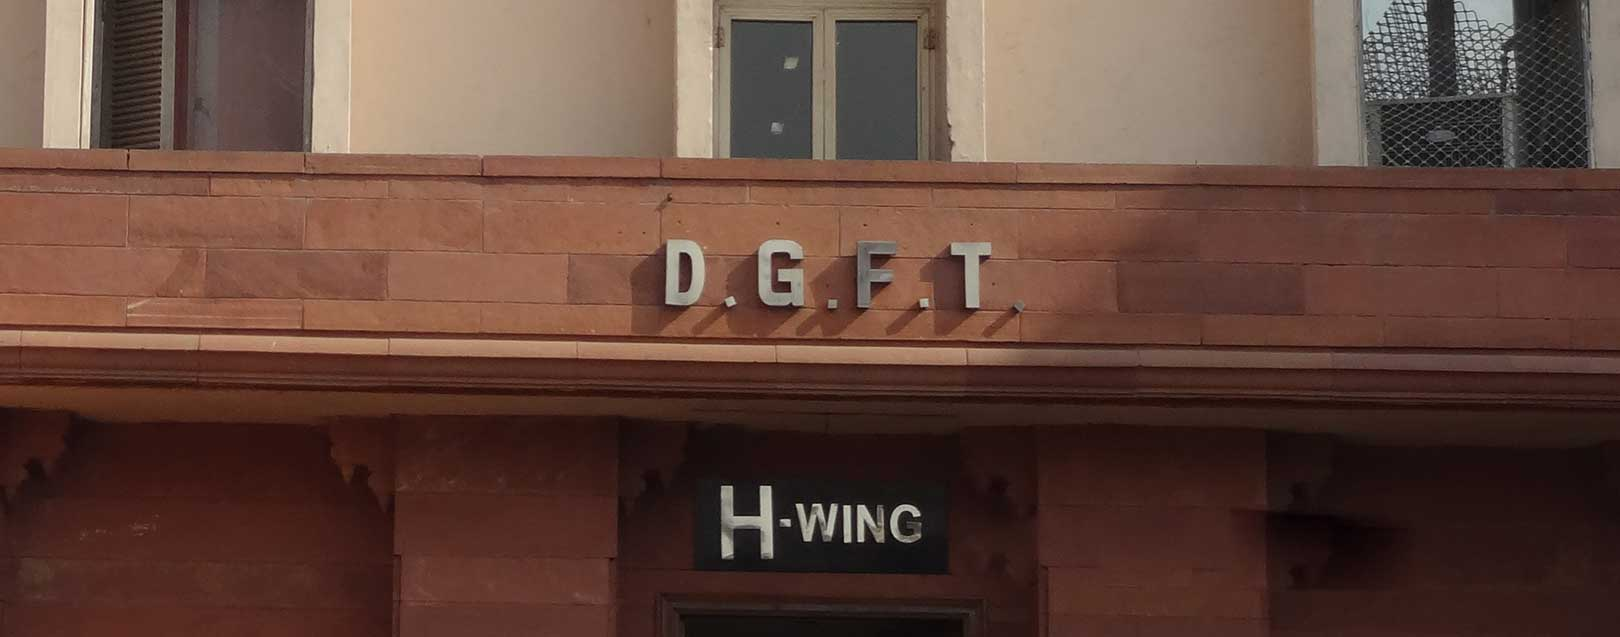 AV Chaturvedi takes over as additional charge of DGFT after Bhalla